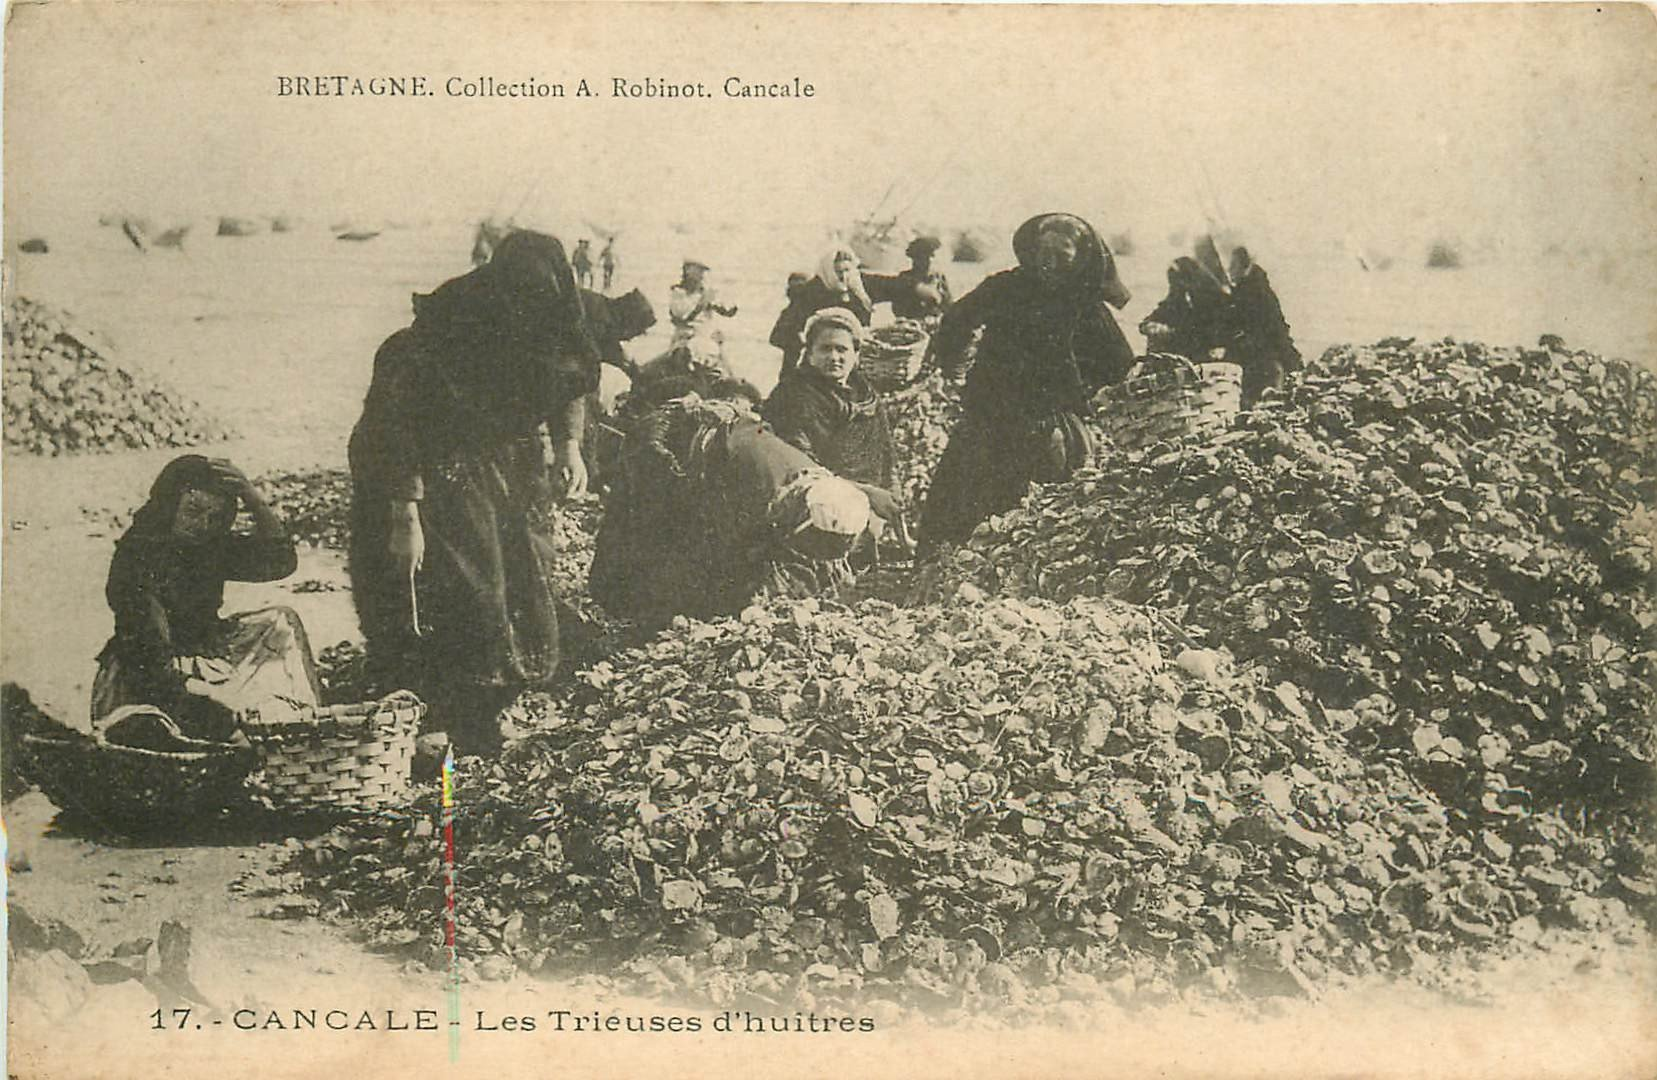 35 CANCALE. Les Trieuses d'Huîtres. Collection Robinot. Carte postale ancienne vers 1900